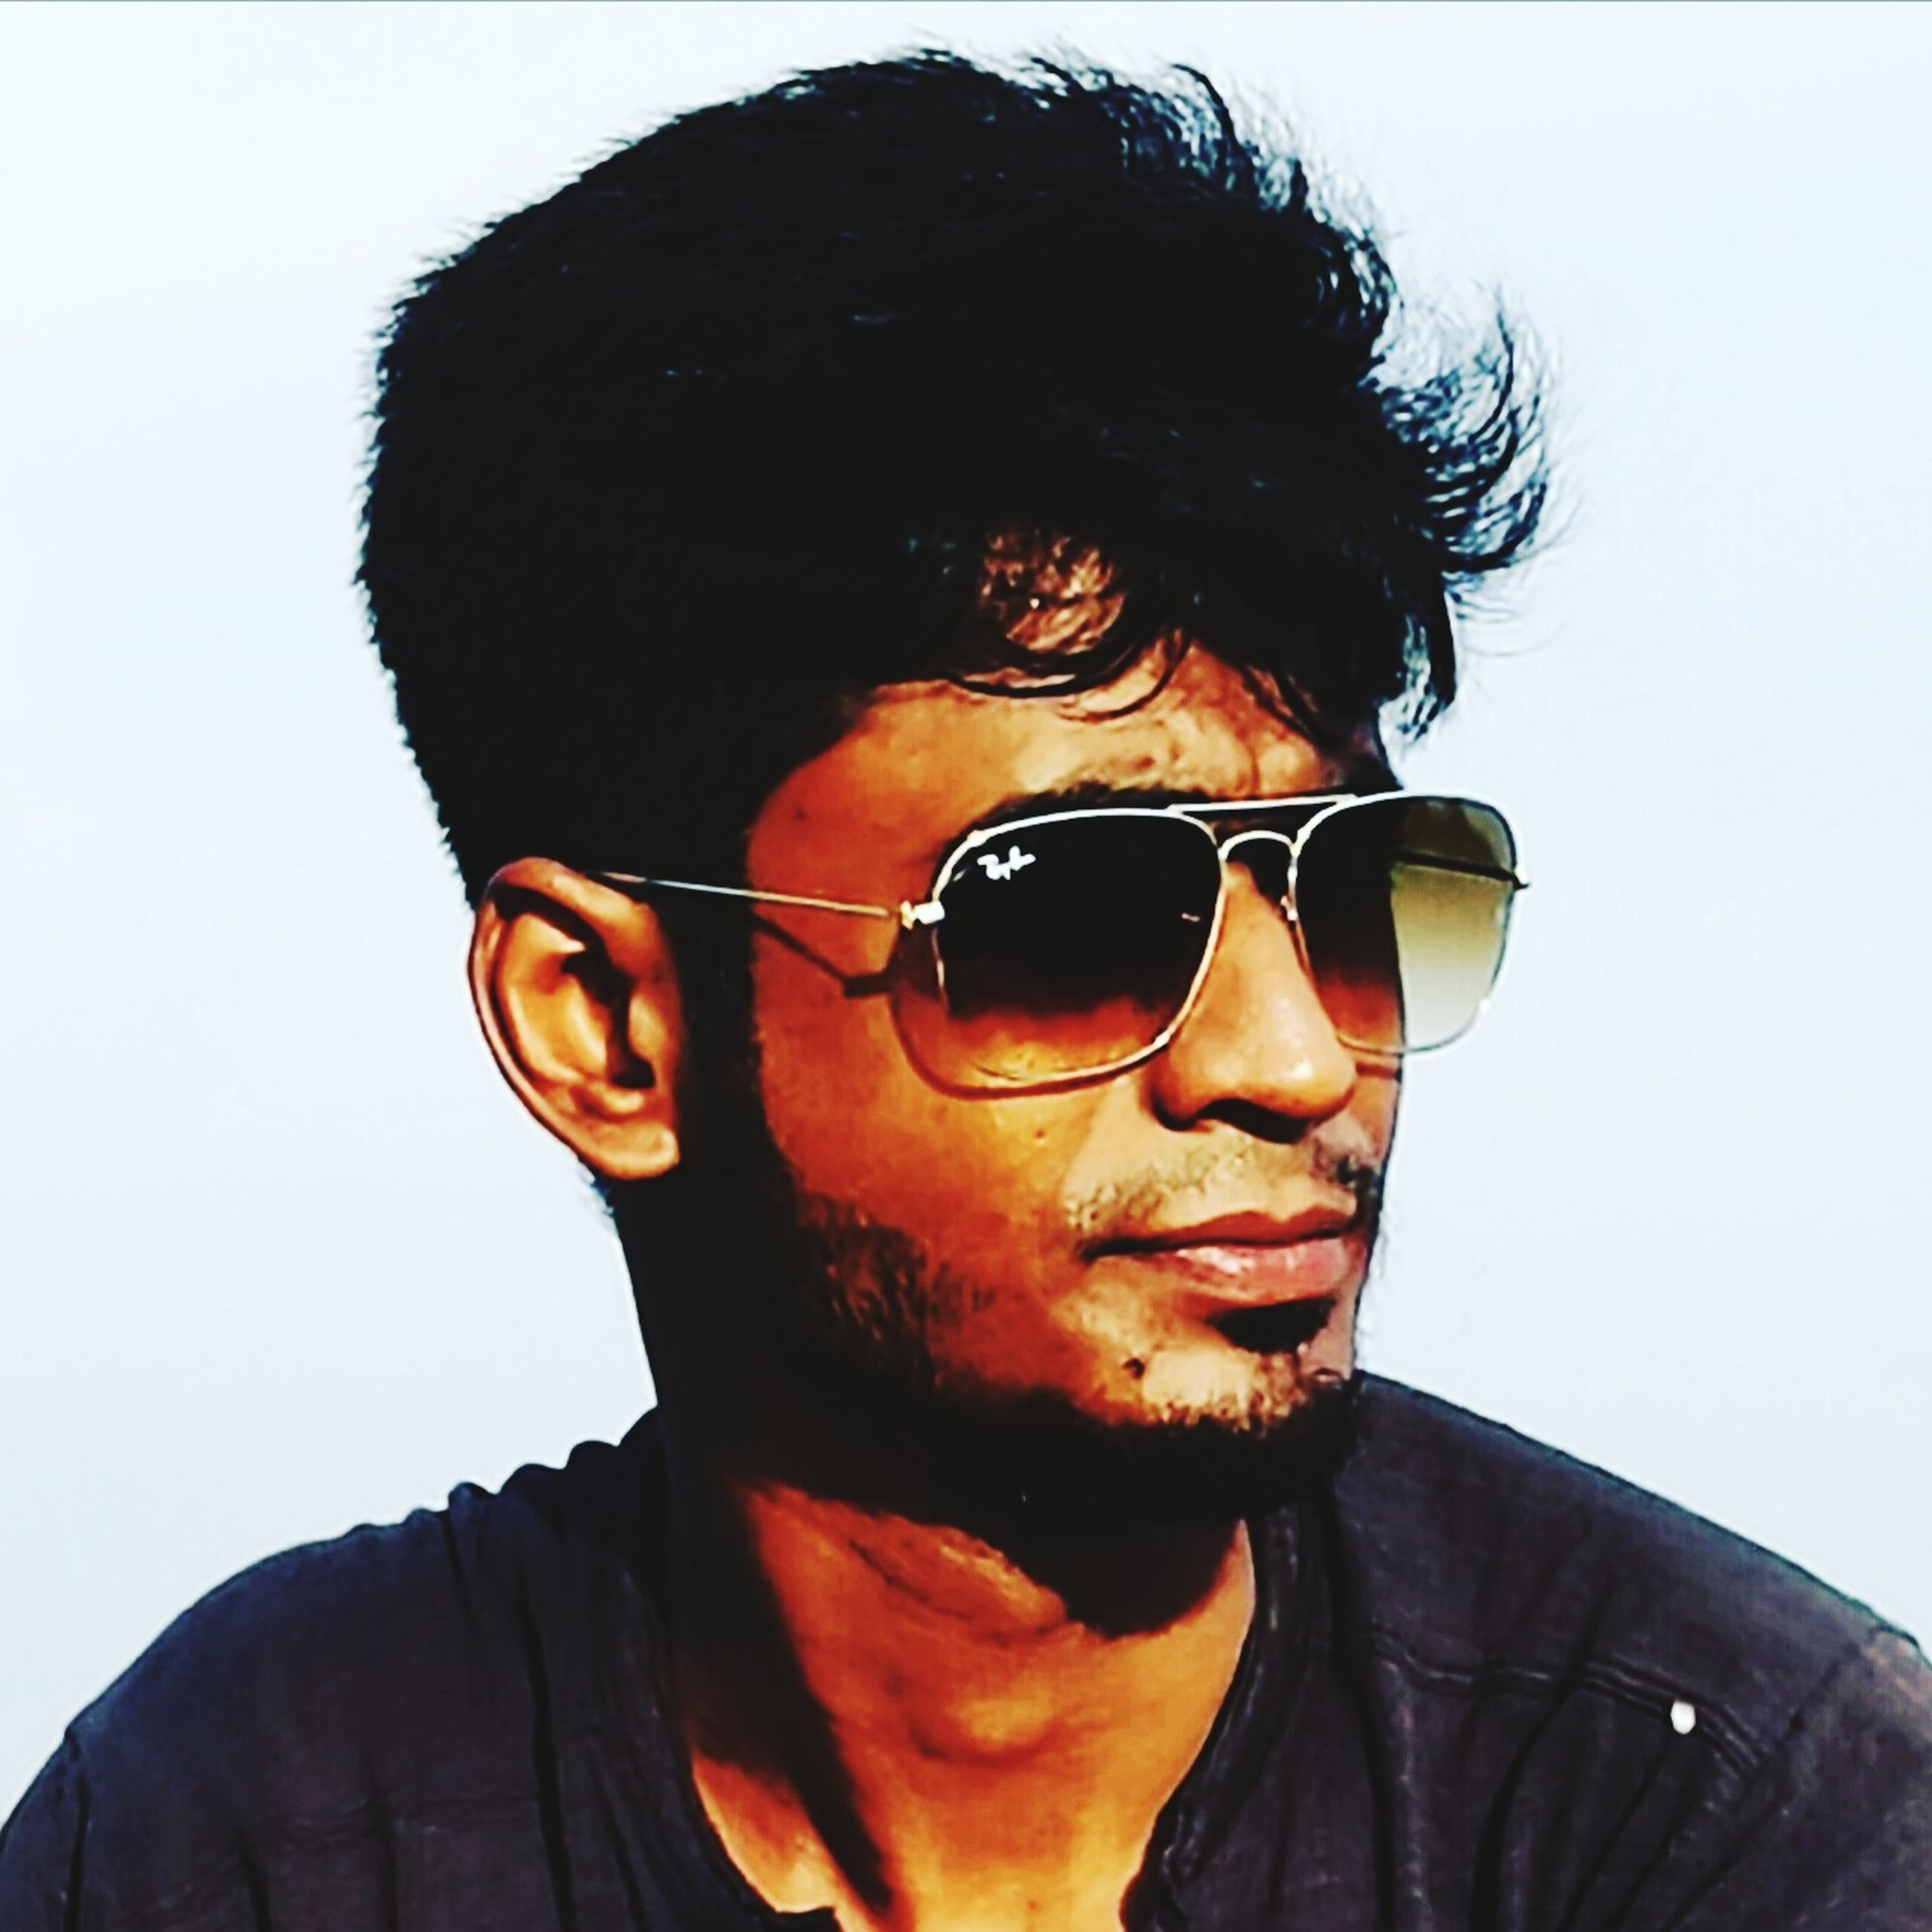 sunglasses, real people, one person, young adult, mid adult, front view, looking at camera, lifestyles, portrait, mid adult men, head and shoulders, black hair, young men, leisure activity, headshot, outdoors, day, sky, clear sky, smiling, young women, close-up